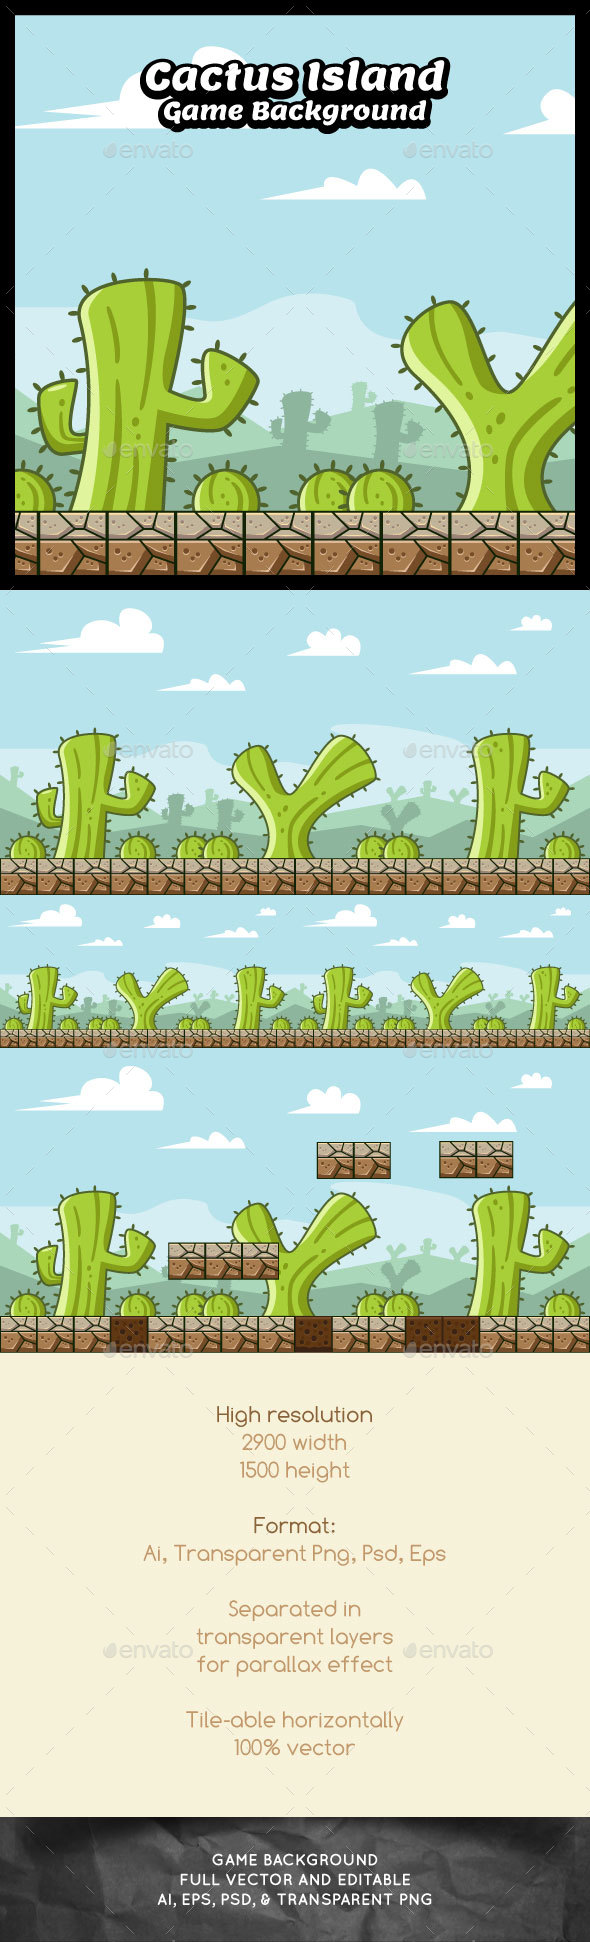 Cactus Island Game Background (Backgrounds)